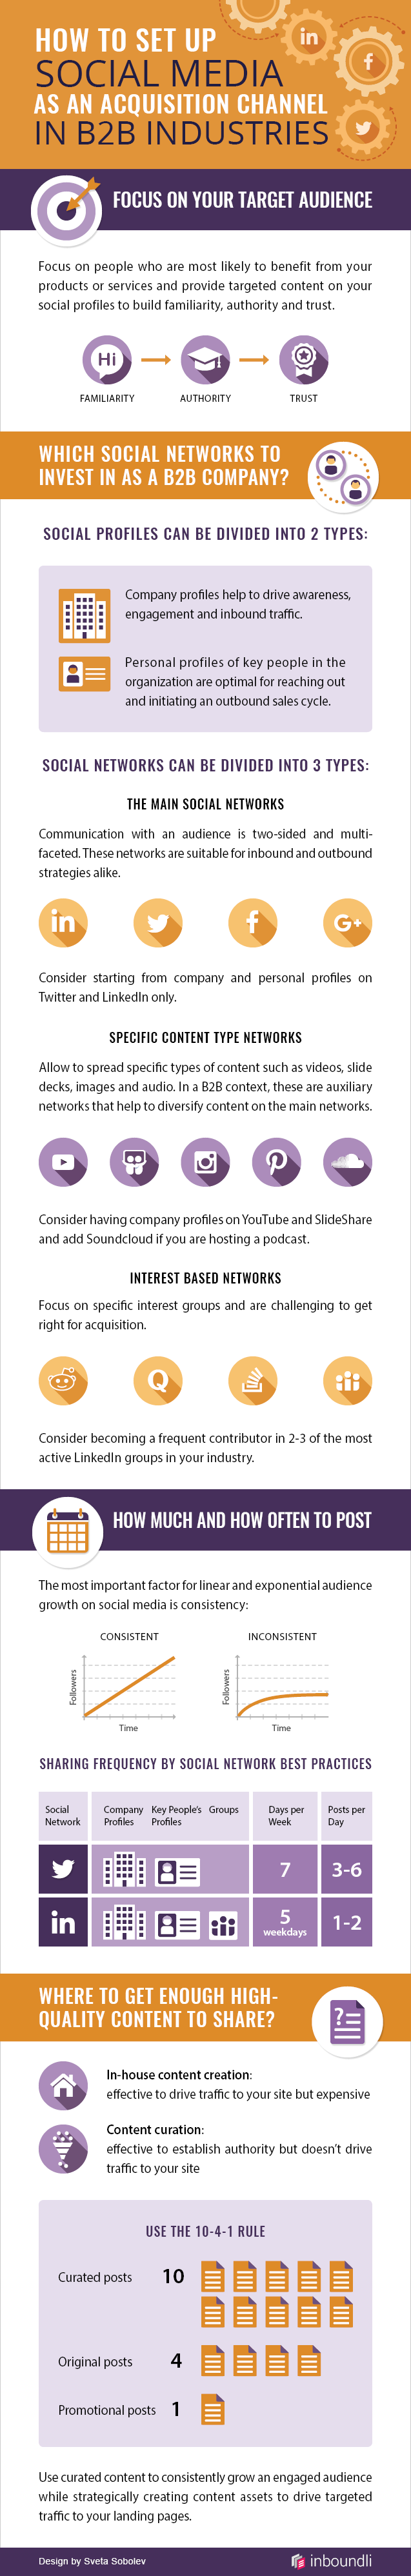 How to Set Up Social Media as an Acquisition Channel in B2B Industries [Infographic] - Infographic showing how to setup social media channels as a B2B company